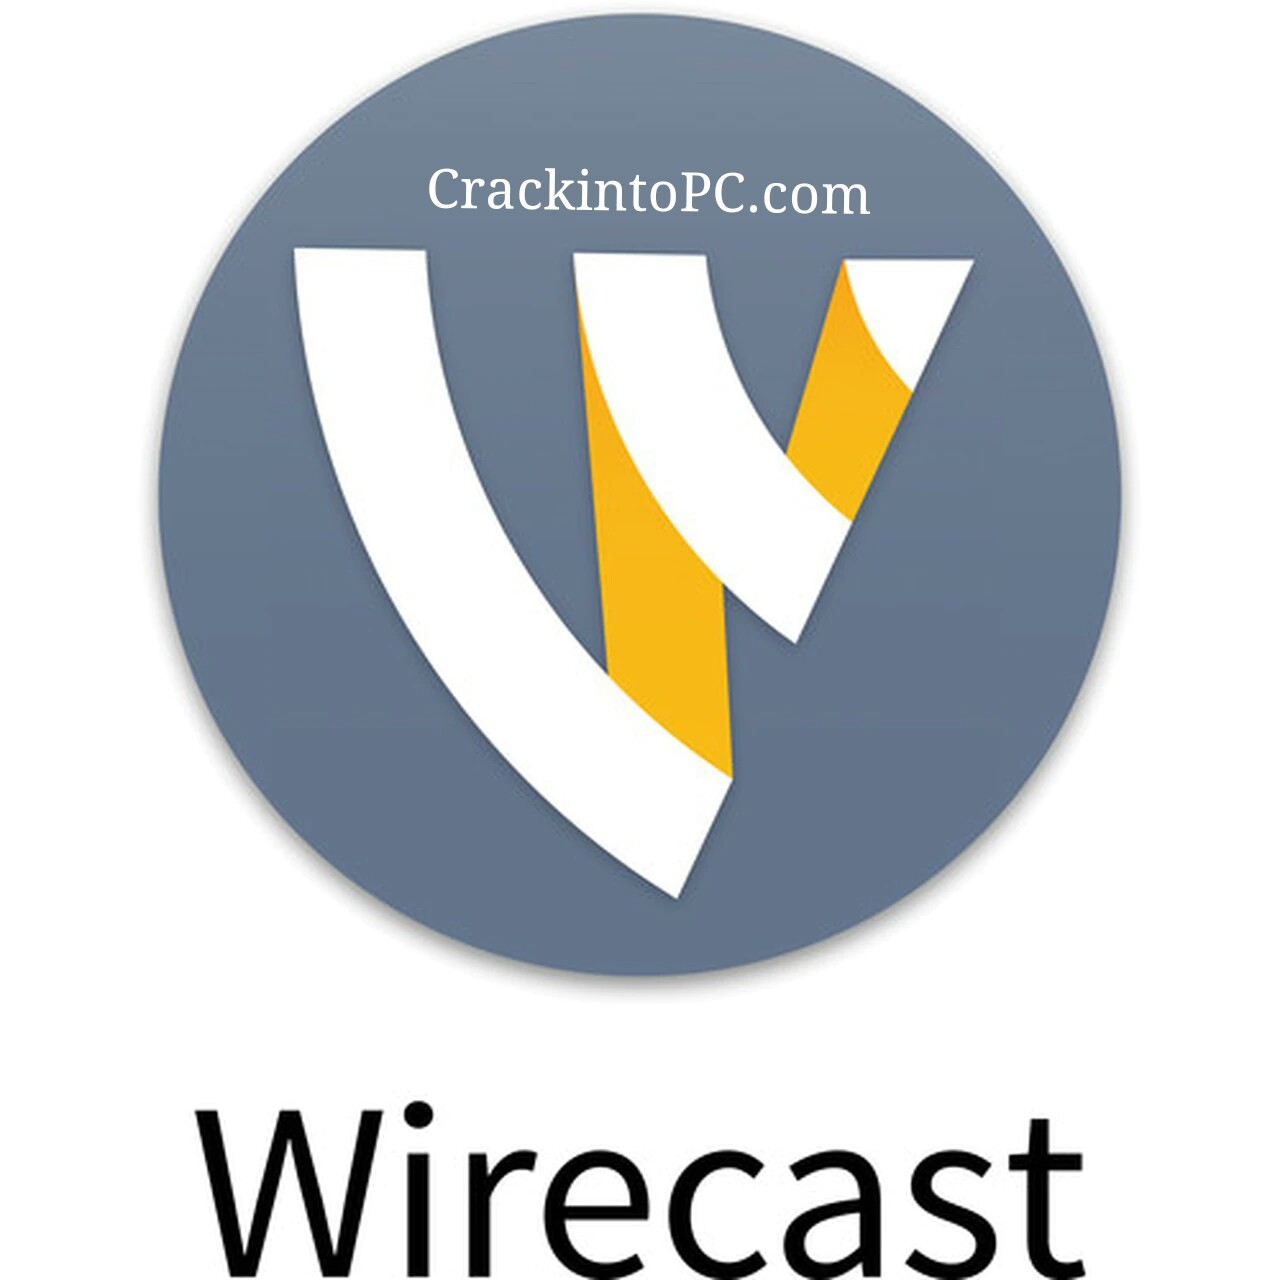 Wirecast Pro 14.3.3 Crack With License Key Download 2022 Latest